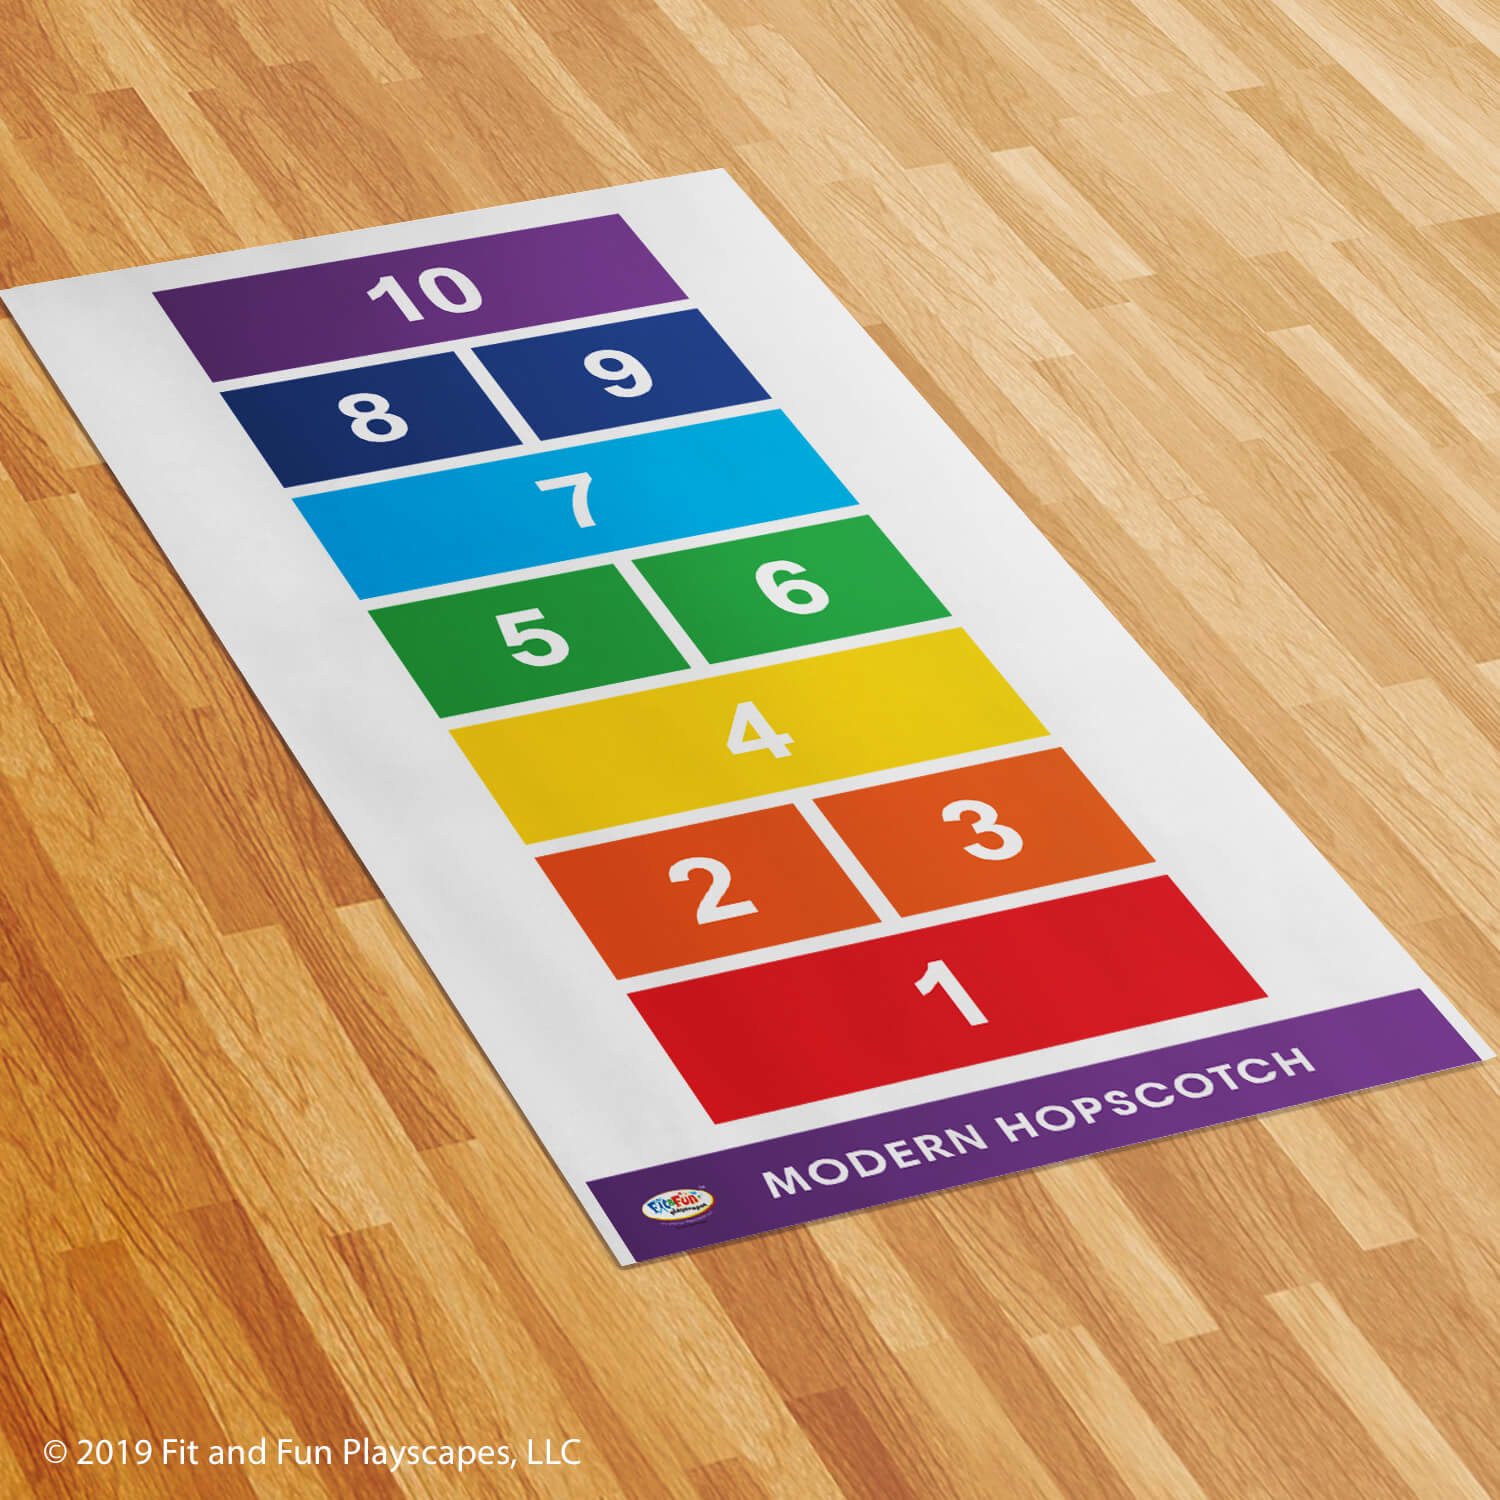 Modern Hopscotch Roll-Out Activity